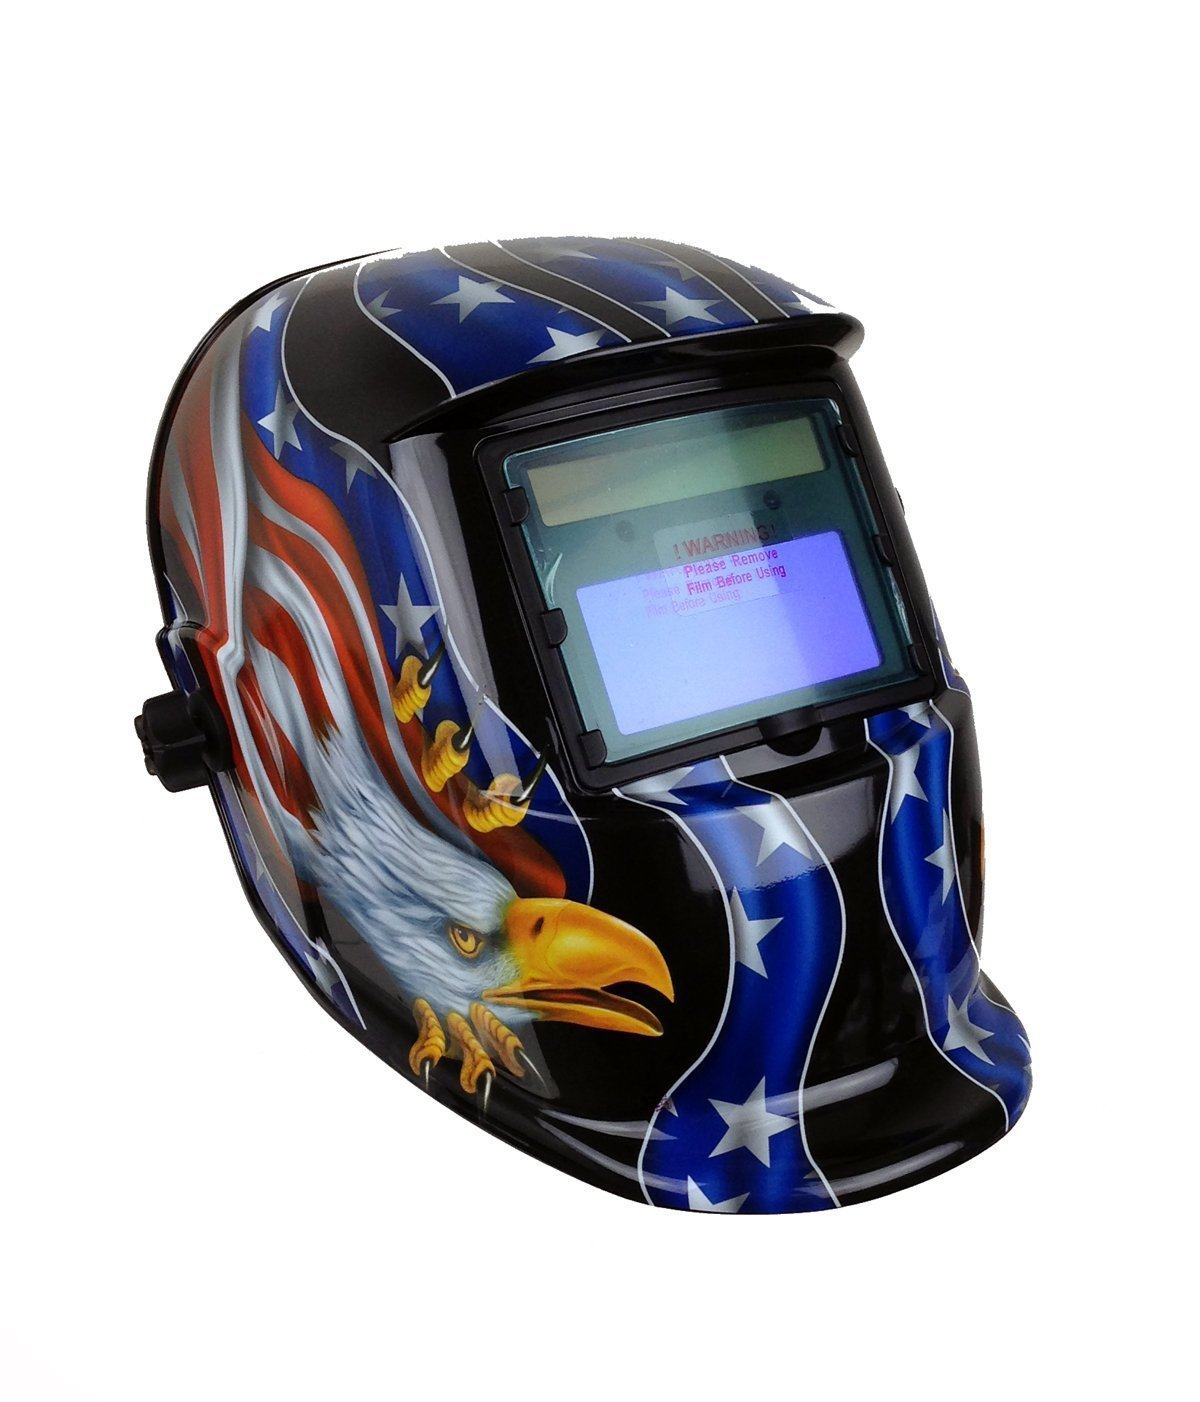 Instapark ADF Series GX-500S Solar Powered Auto Darkening Welding Helmet with Adjustable Shade Range #9 - #13 (American Eagle) by Instapark